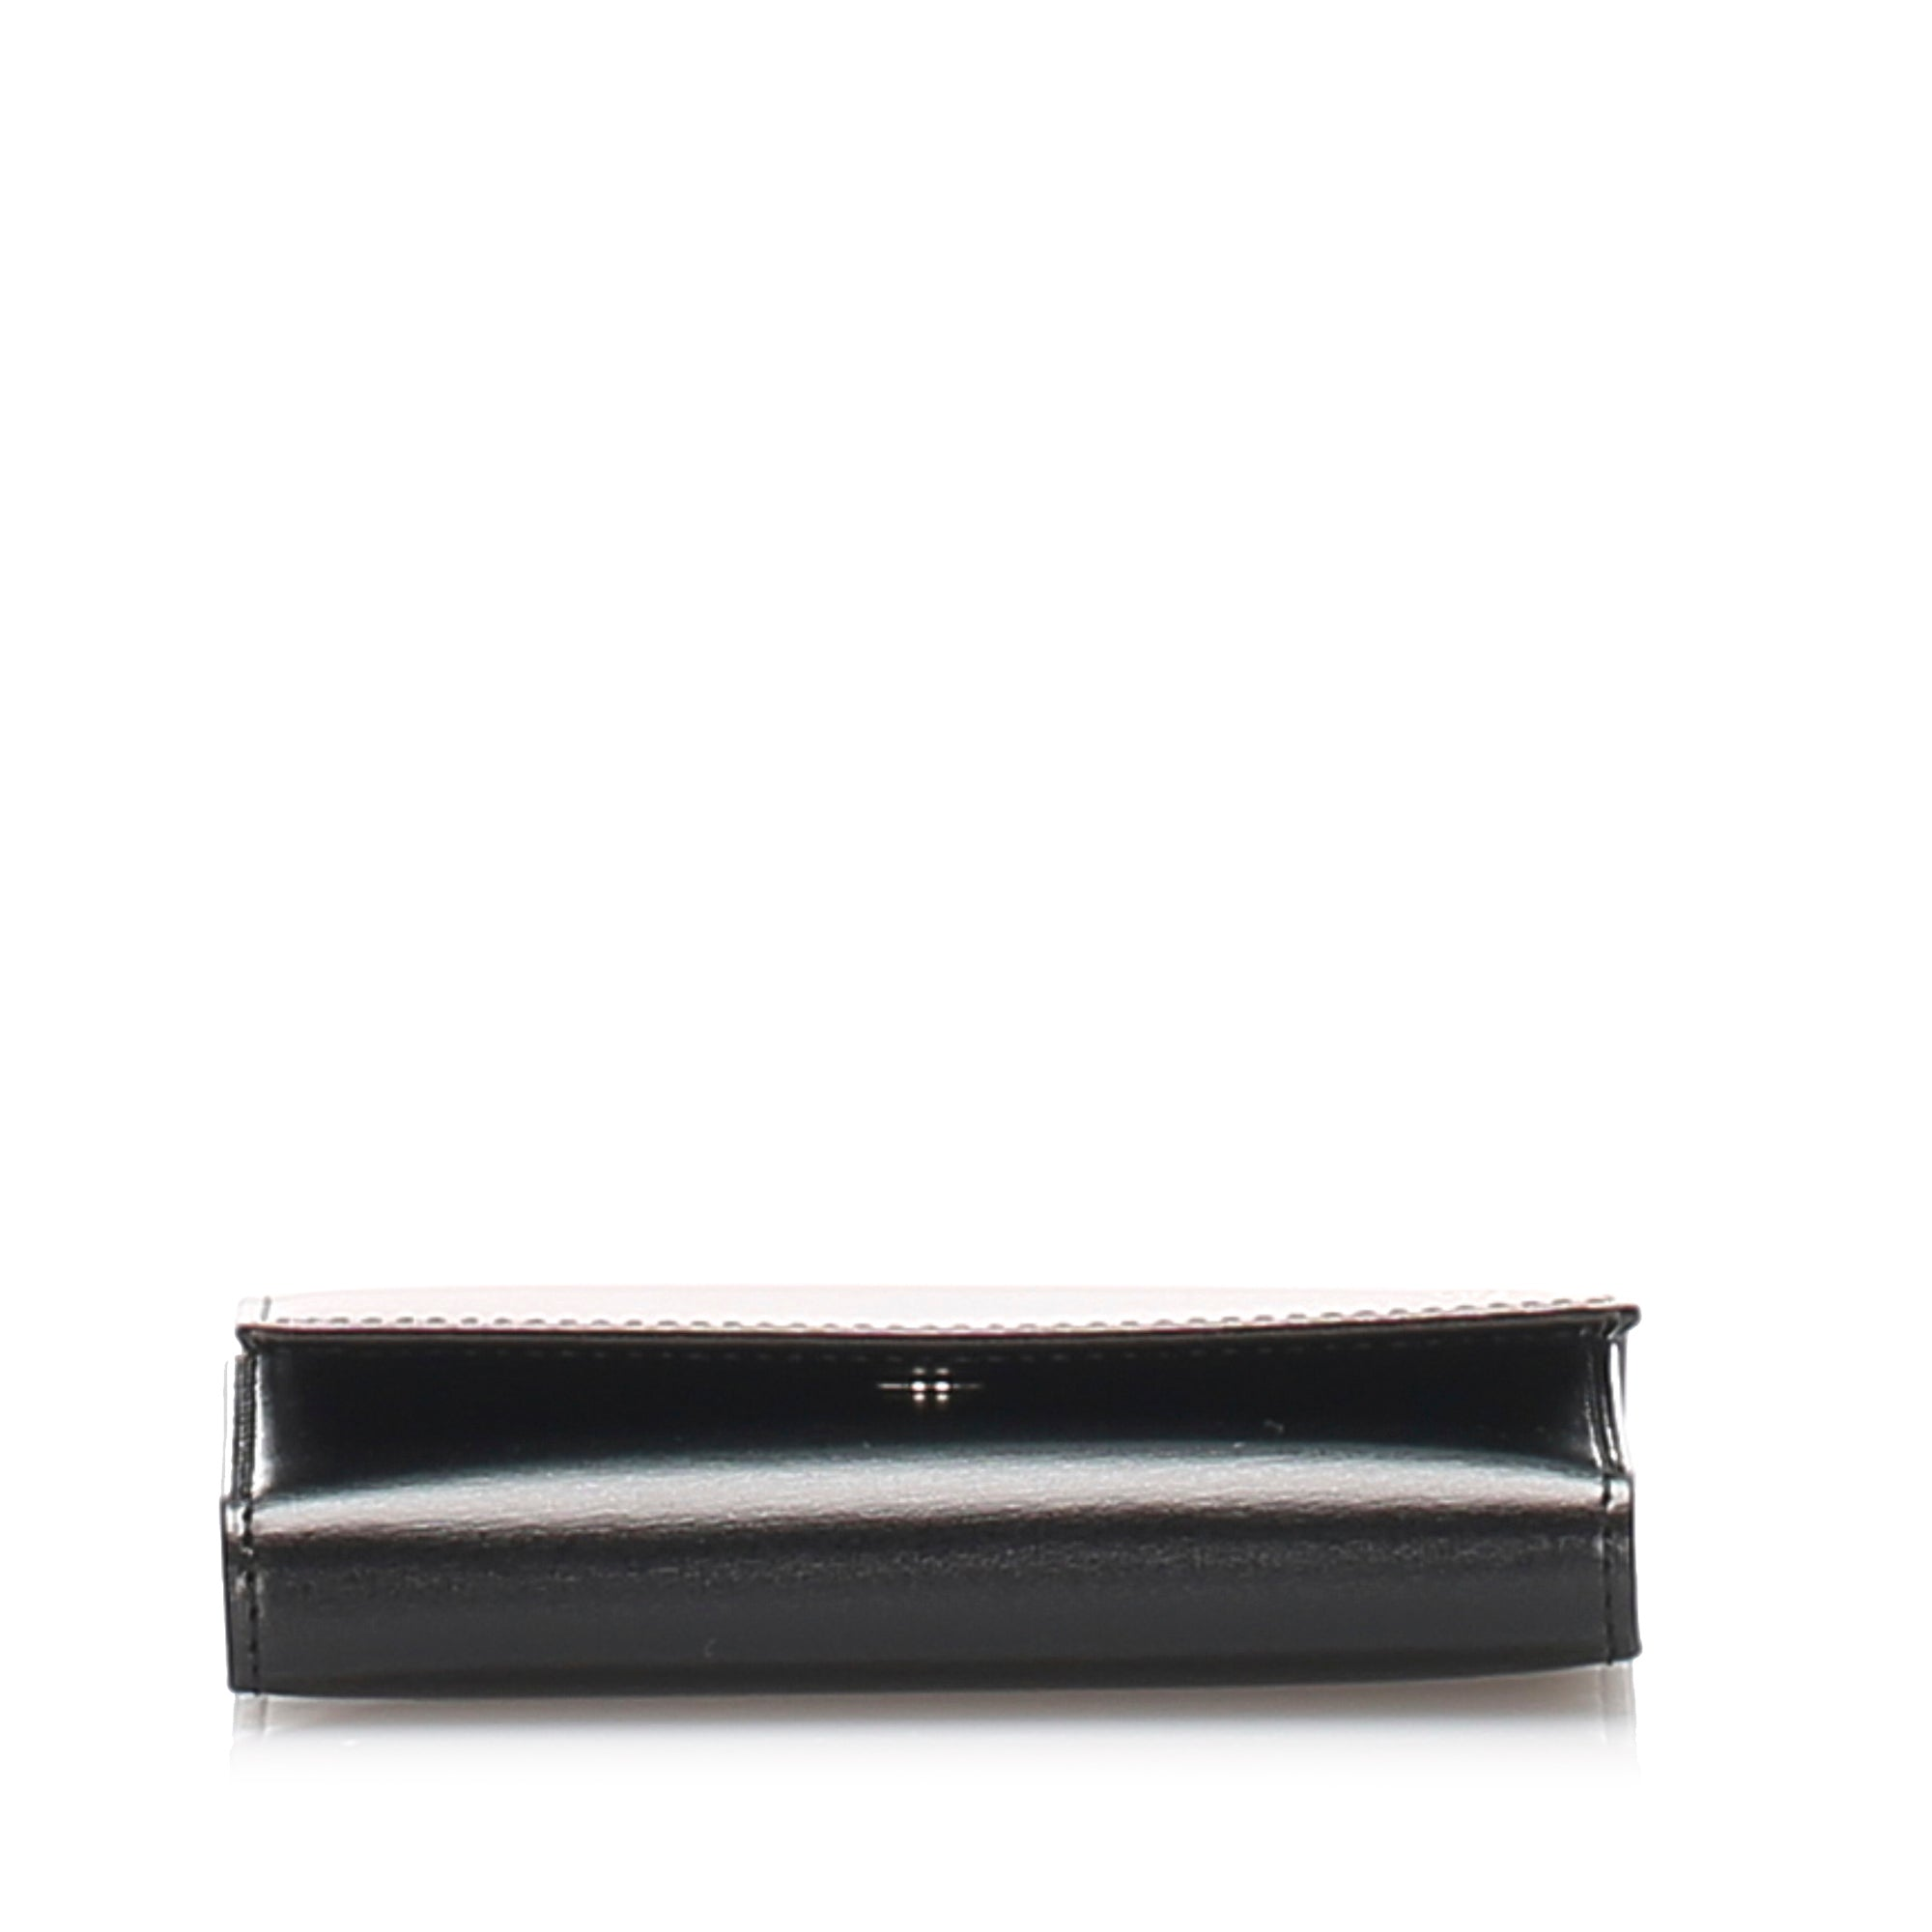 Cartier Black Leather Key Holder